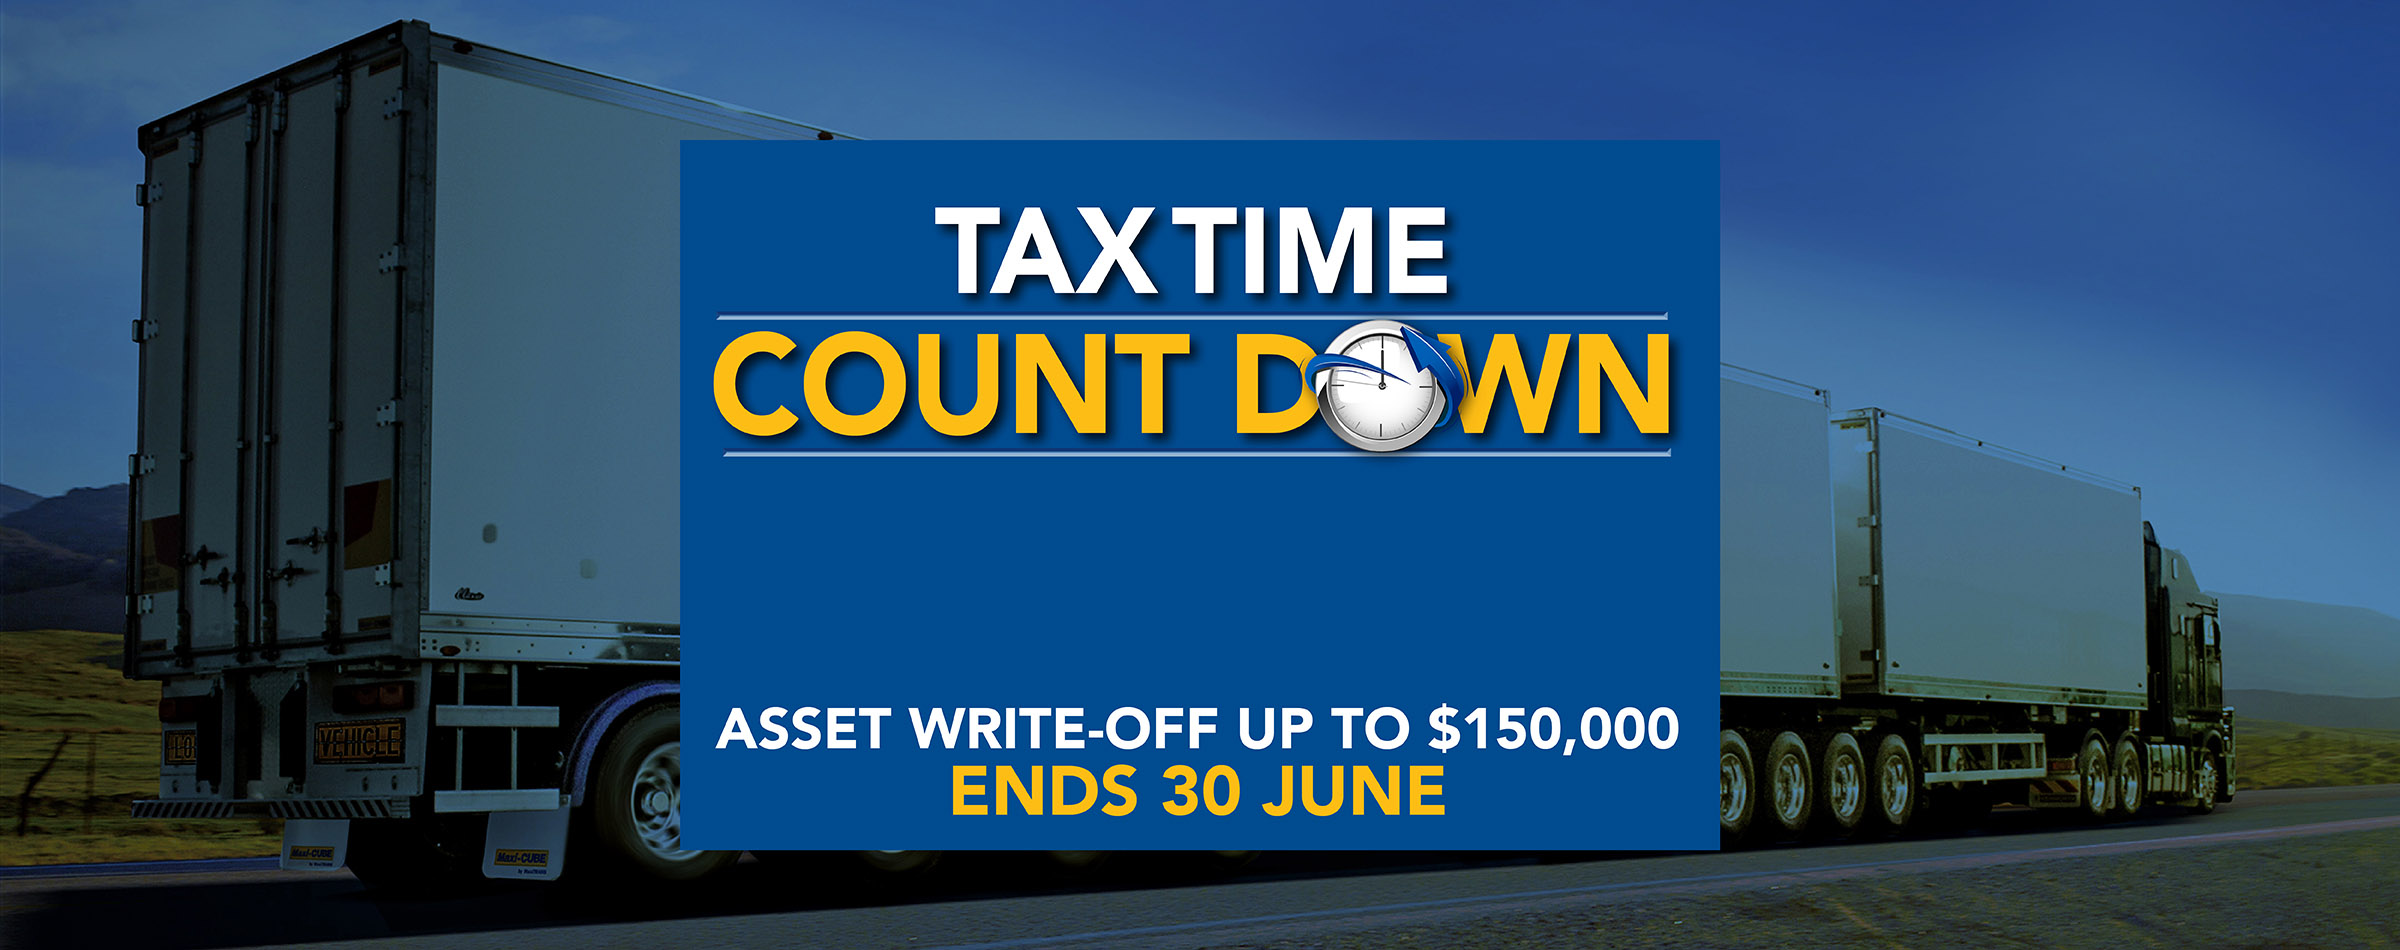 MaxiTRANS Tax Time Count Down